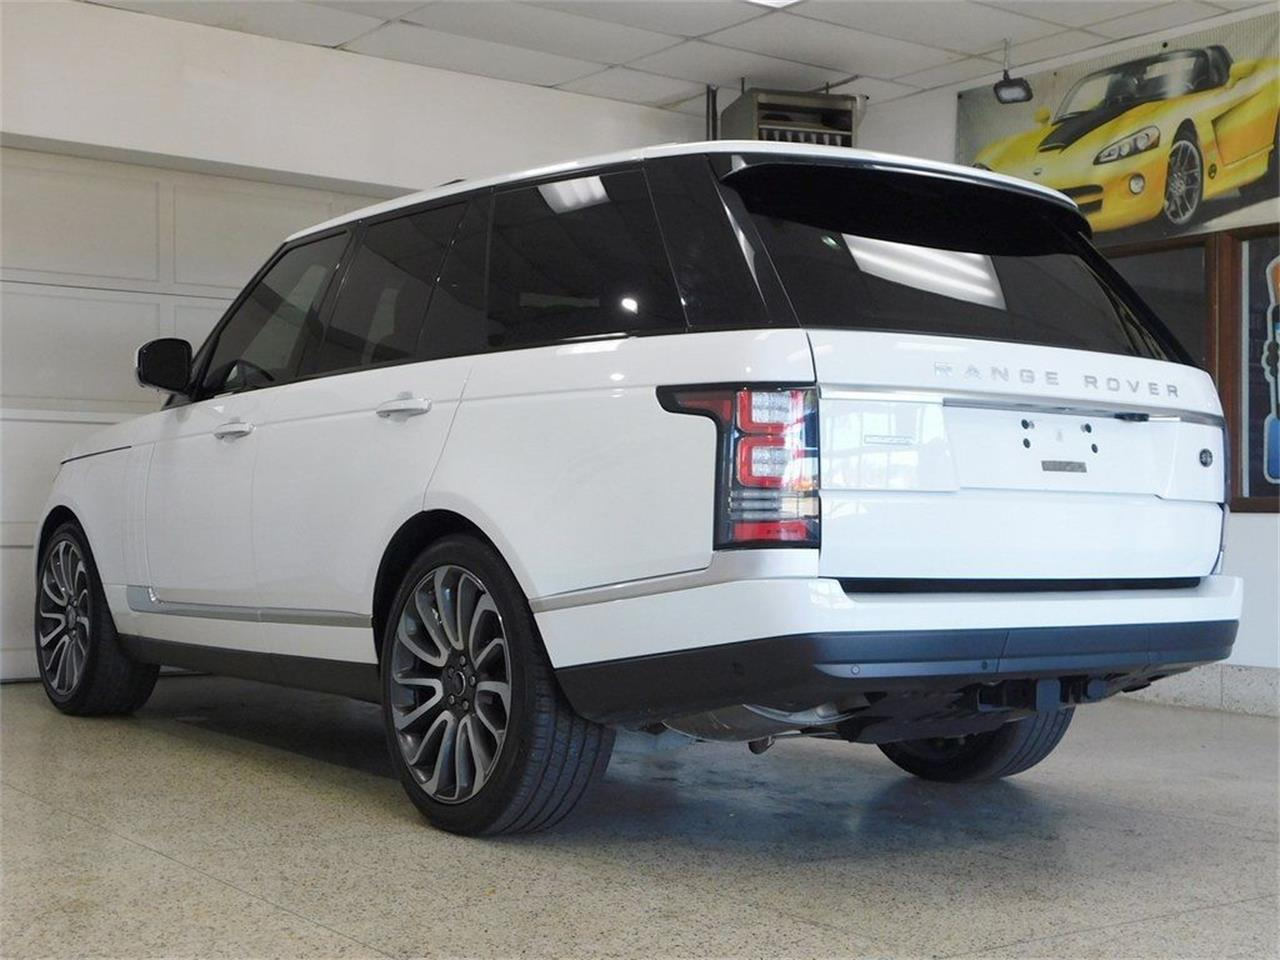 2017 Land Rover Range Rover (CC-1392345) for sale in Hamburg, New York